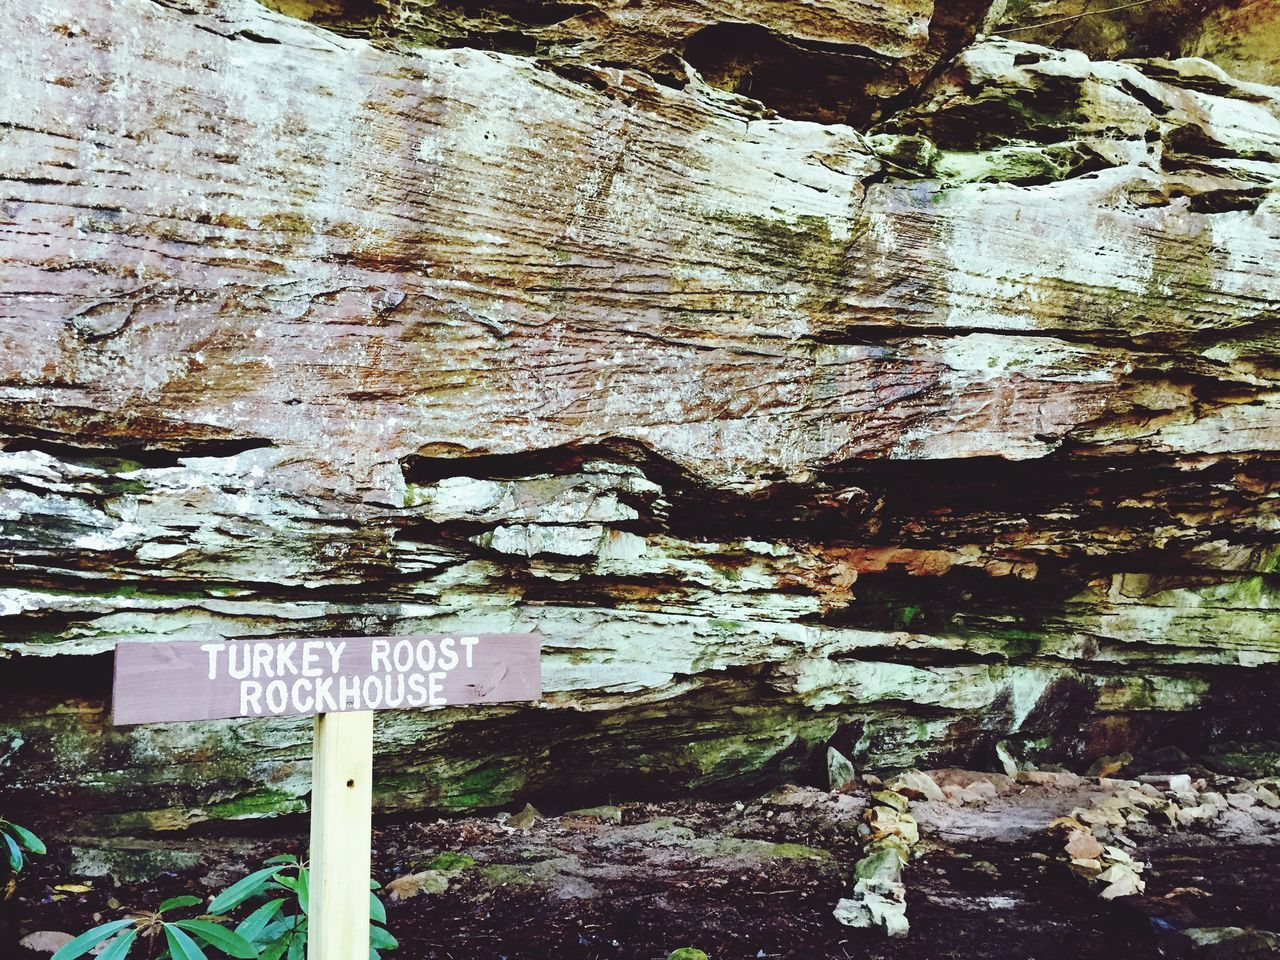 Turkey Roost Rockhouse rock formations Tn Tennessee Hiking Trail